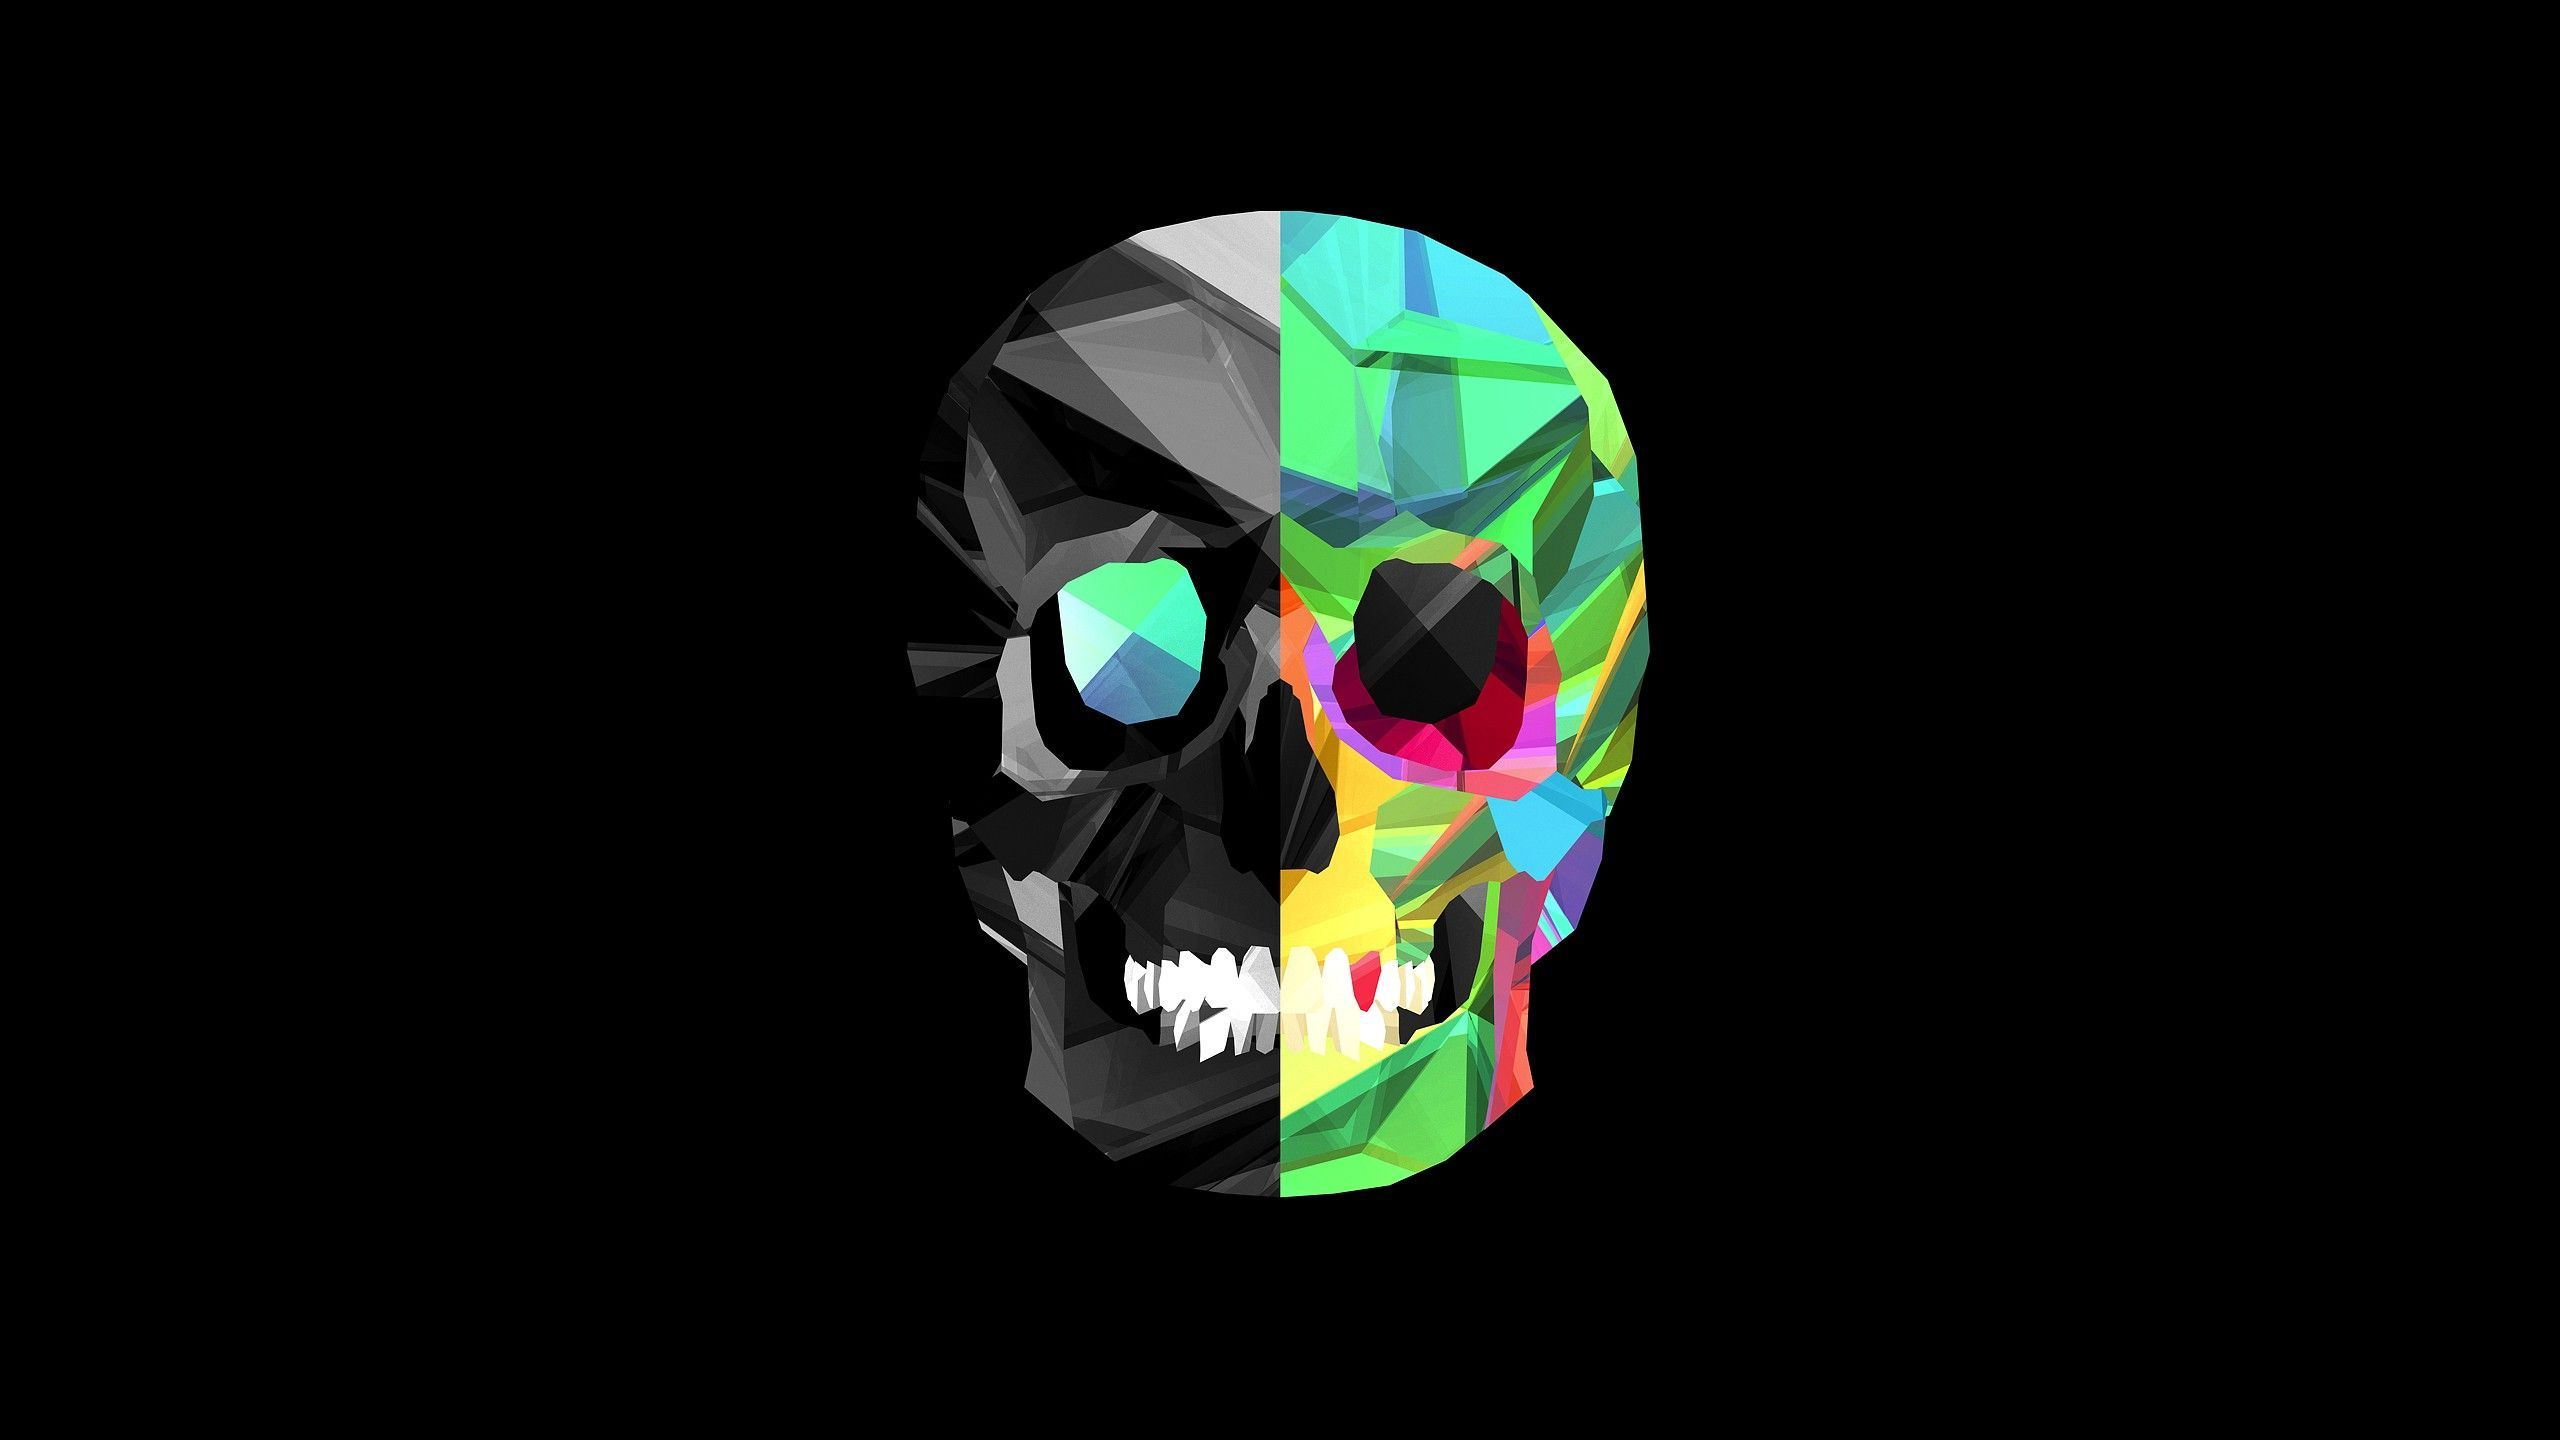 Skull HD Images Wallpapers 14533   HD Wallpapers Site 2560x1440